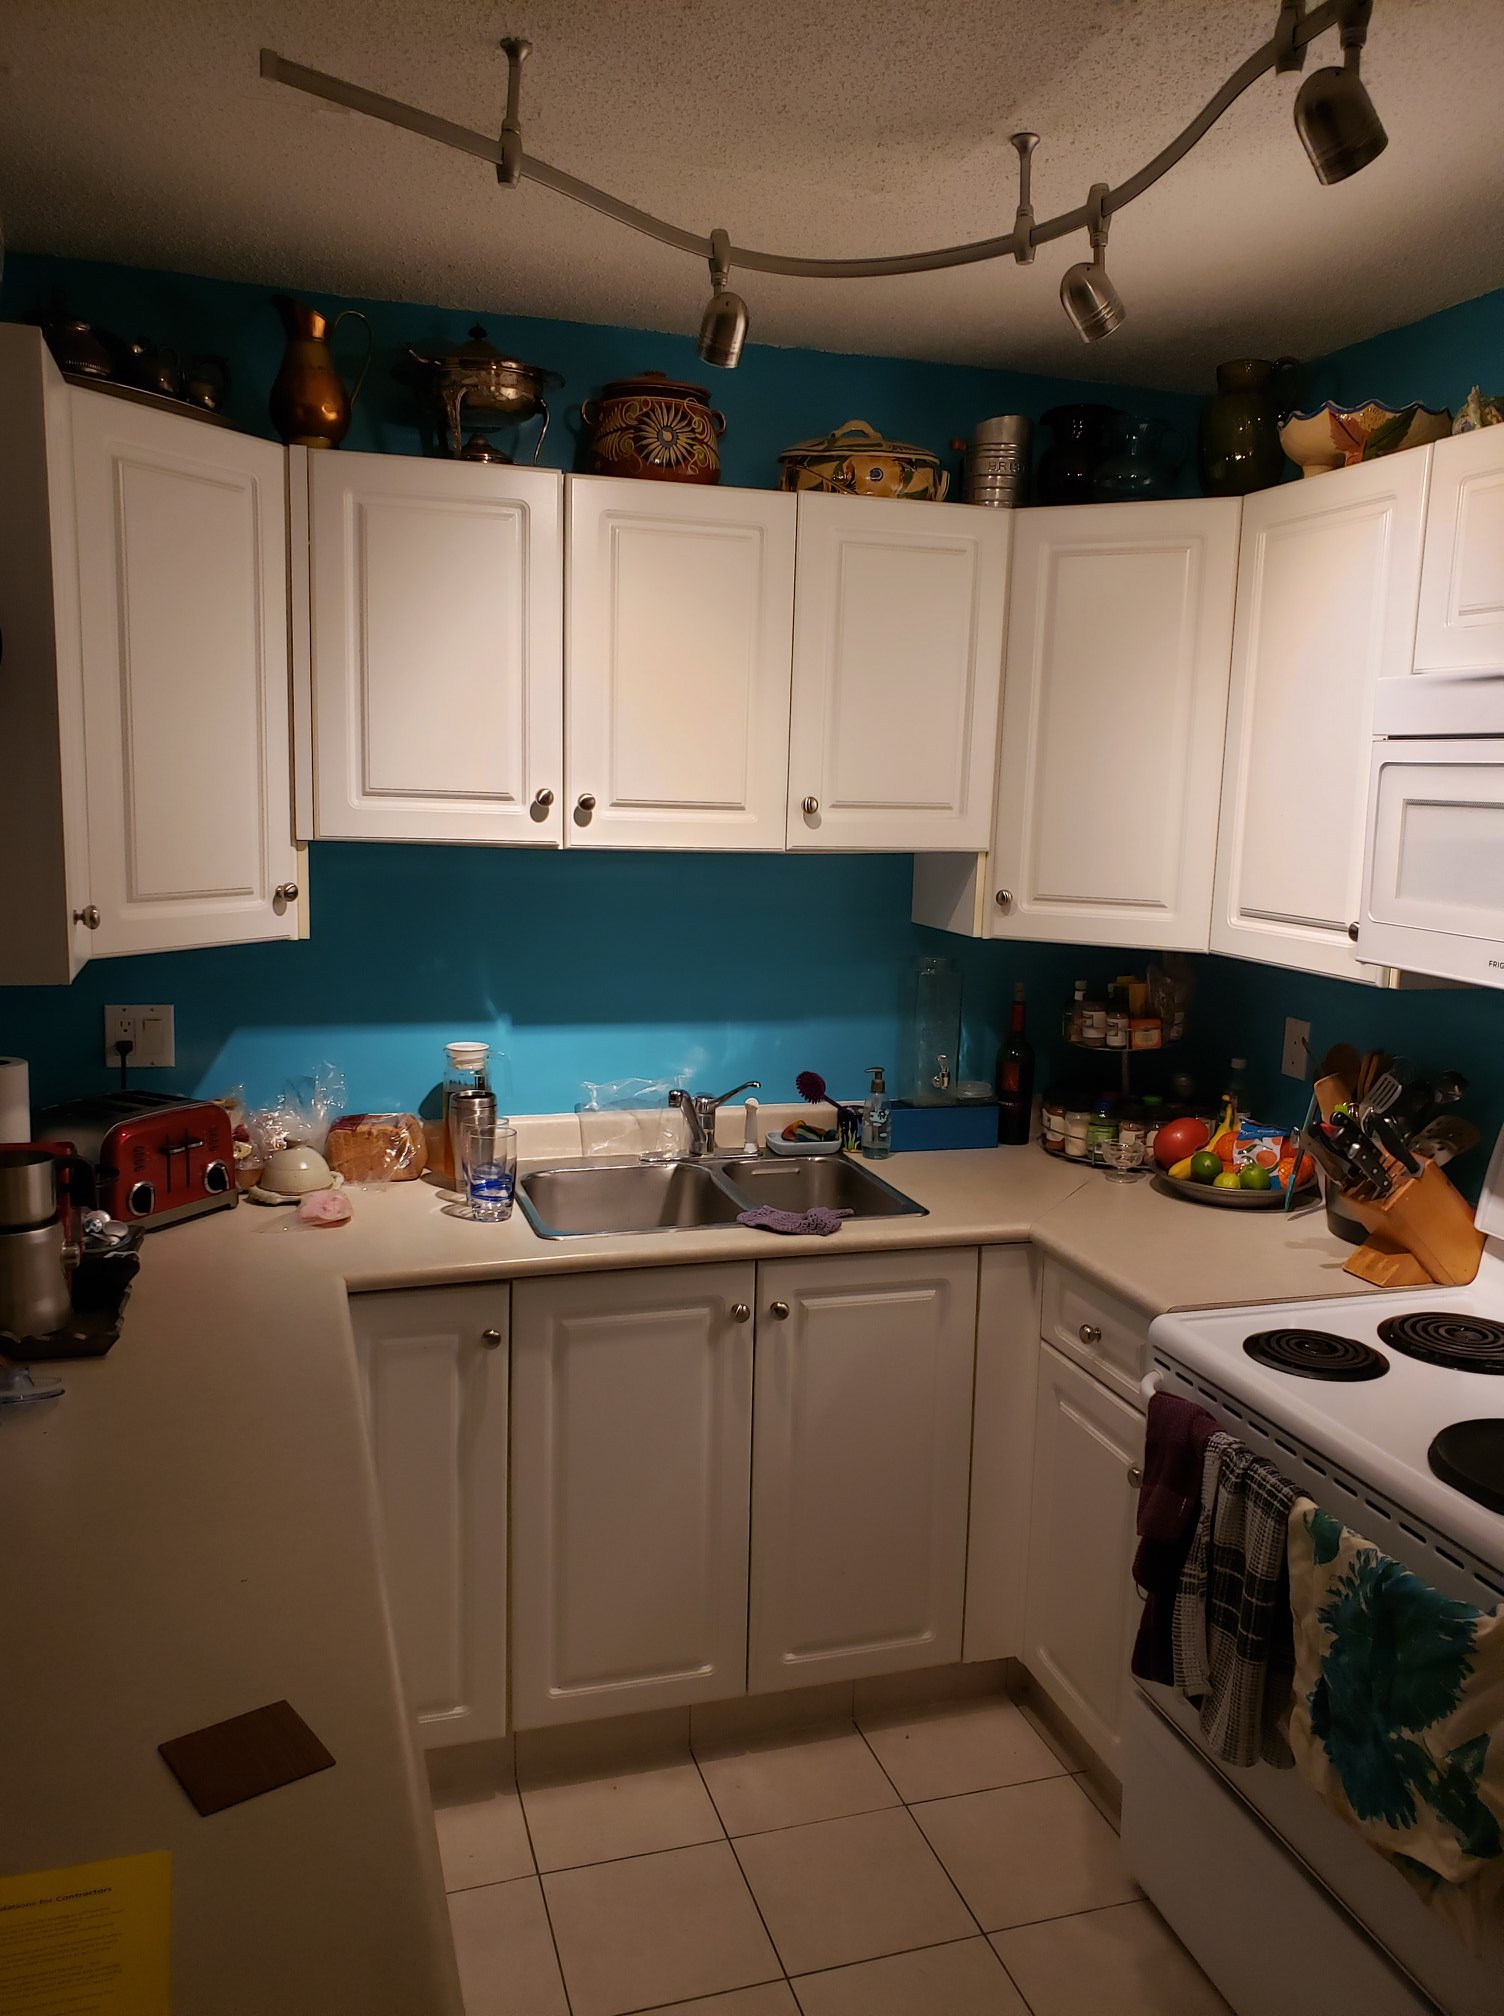 Before and after of modern kitchen renovation with cabinets, countertops and fixtures.